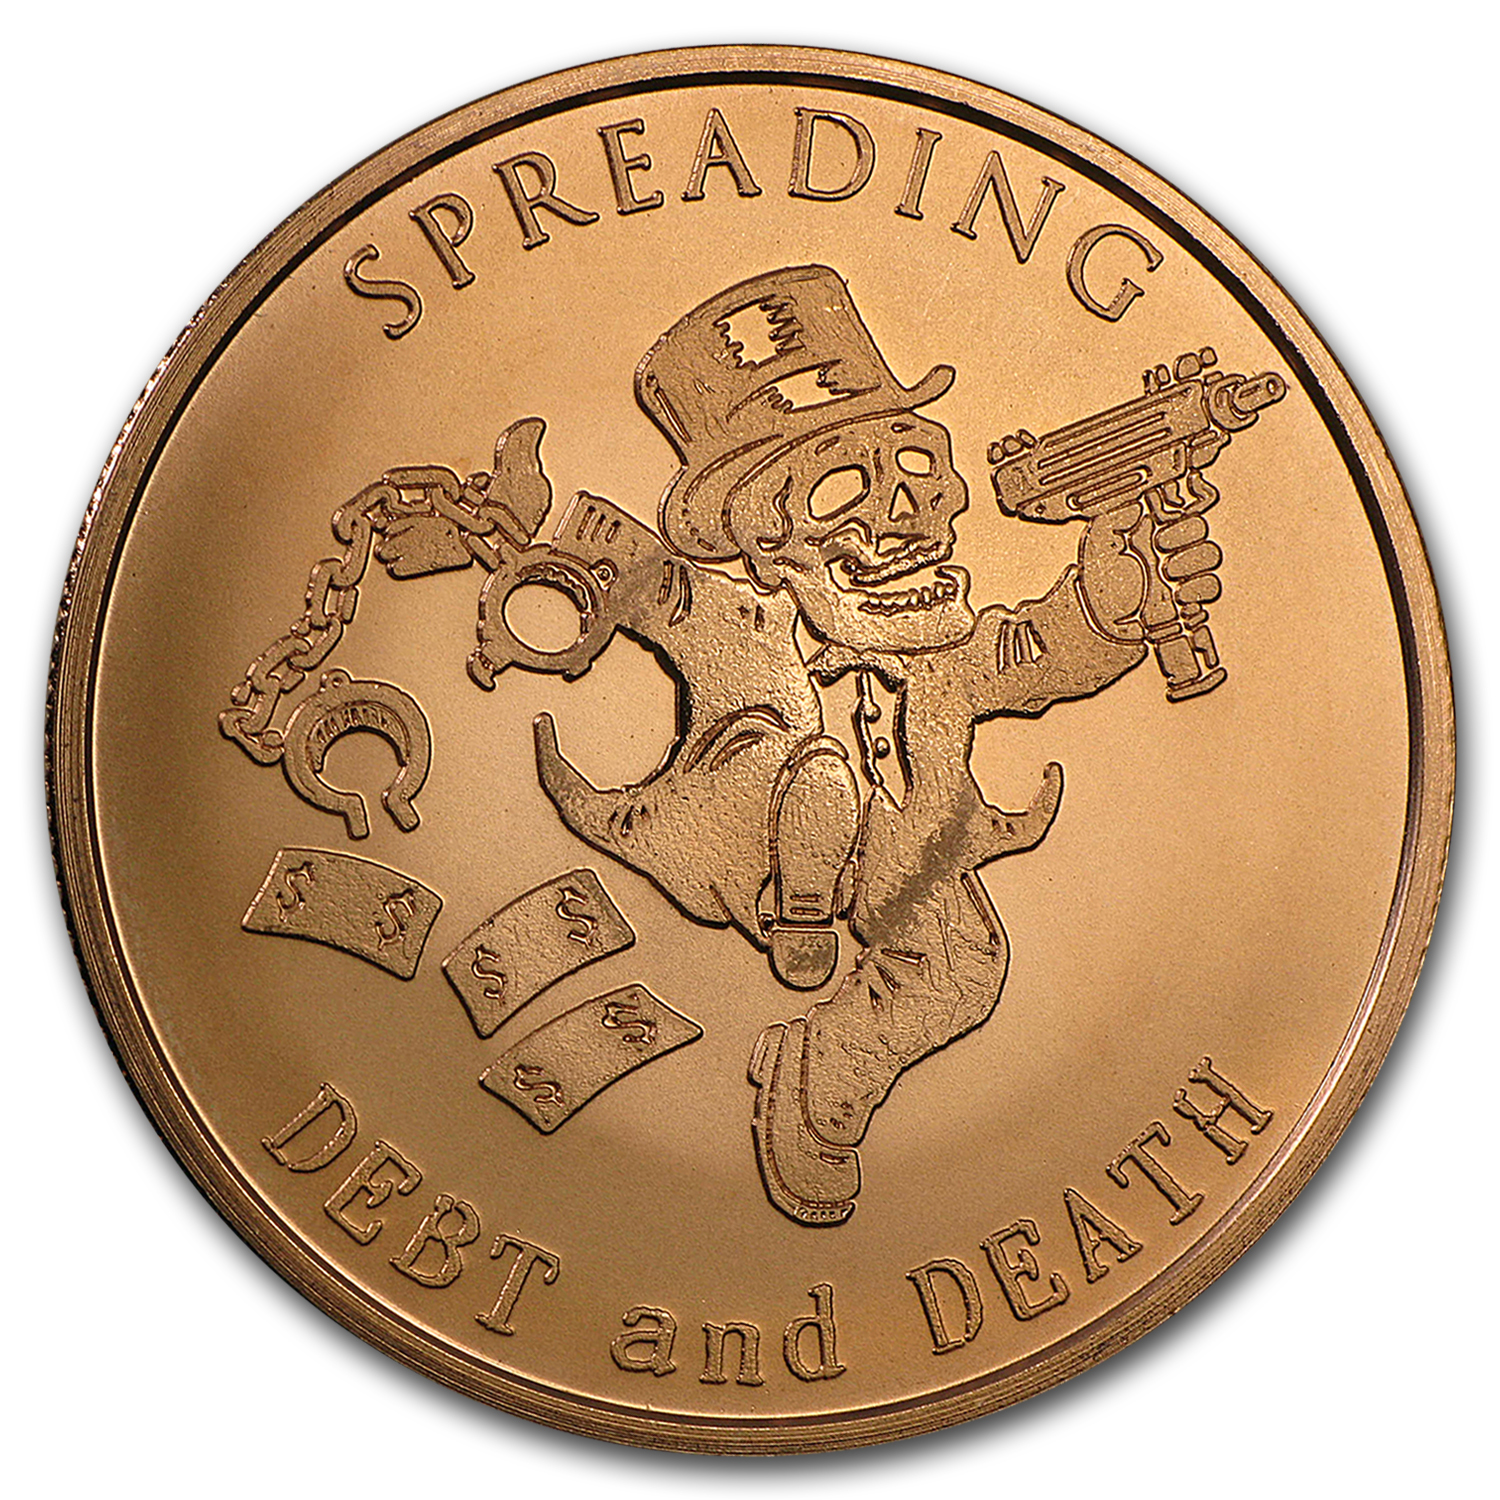 2016 1 oz Copper Round - Spreading Debt and Death